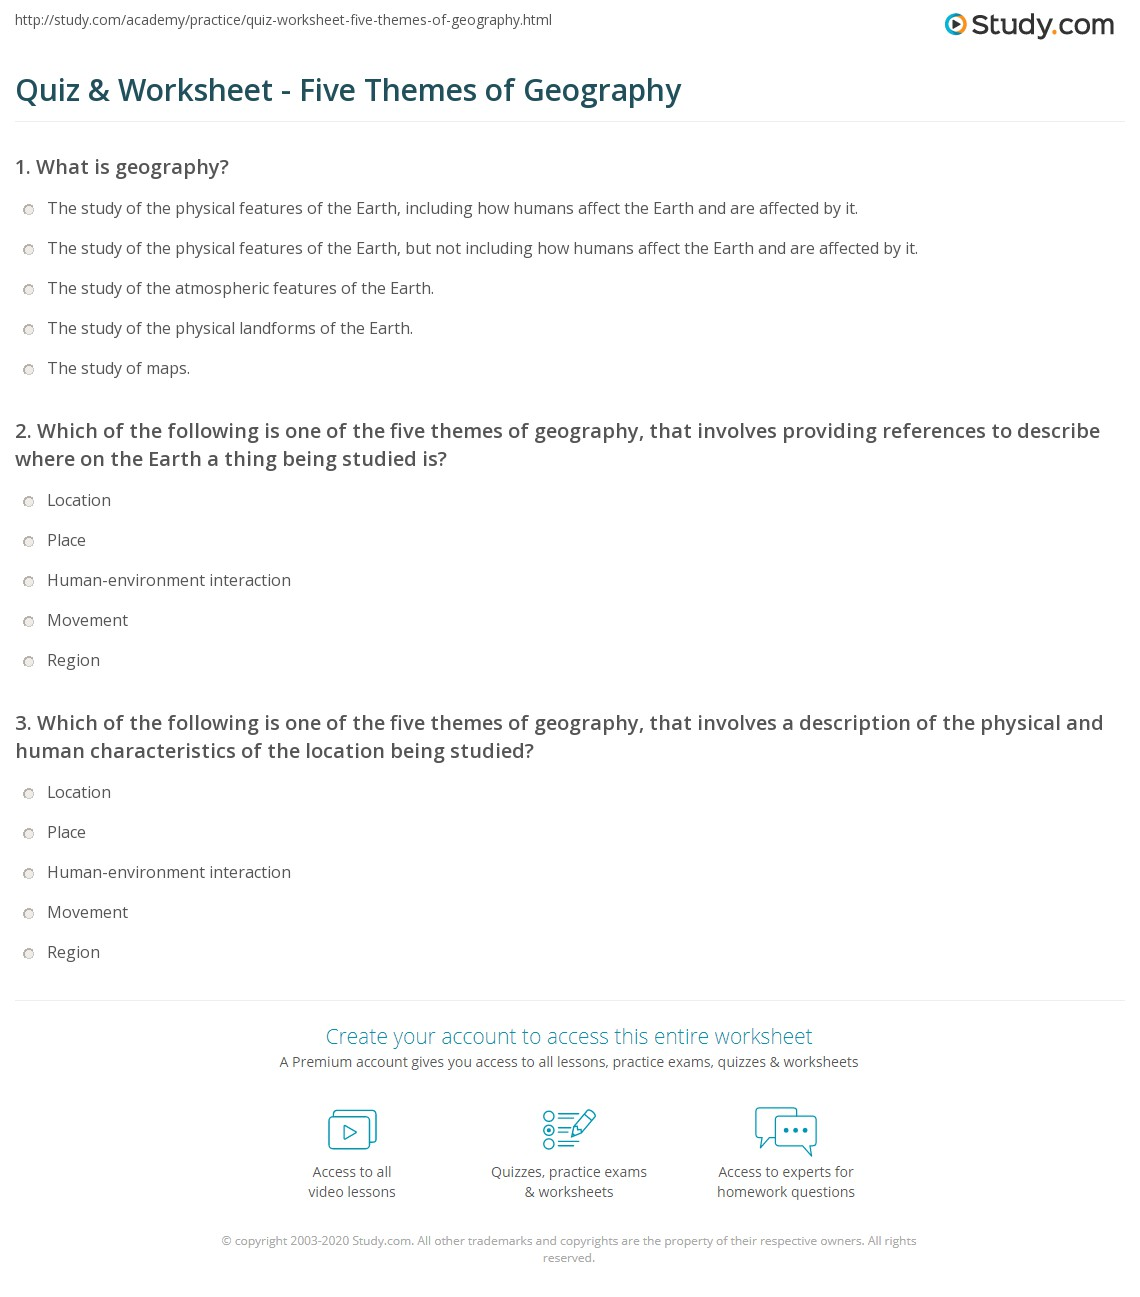 Worksheets Geography Worksheets High School quiz worksheet five themes of geography study com print what are the worksheet